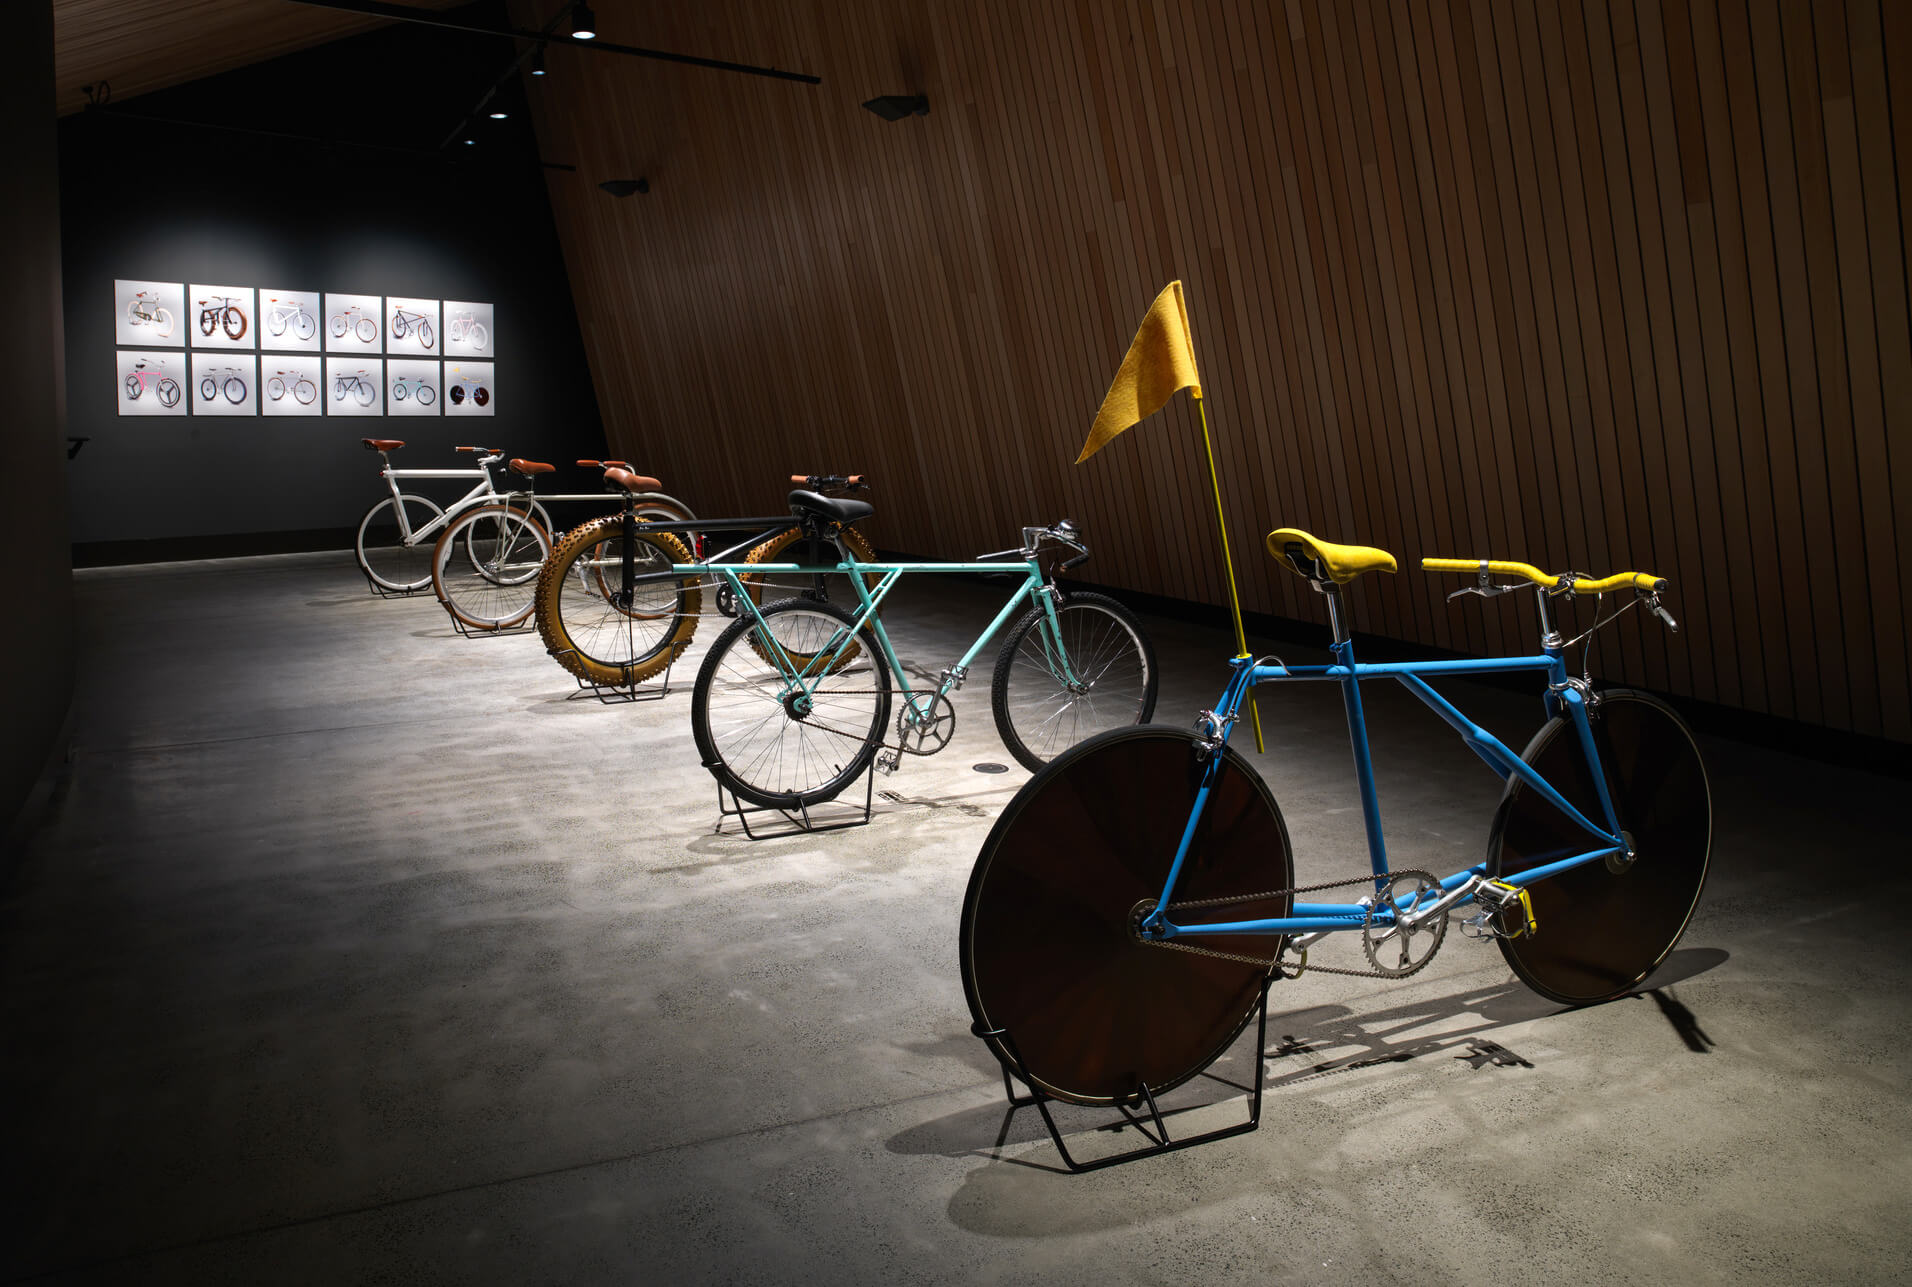 Prototypes of five bicycles created and exhibited at the Museum of Old and New Art, Tasmania, Australia | Velocipedia| Gianluca Gimini | STIRworld